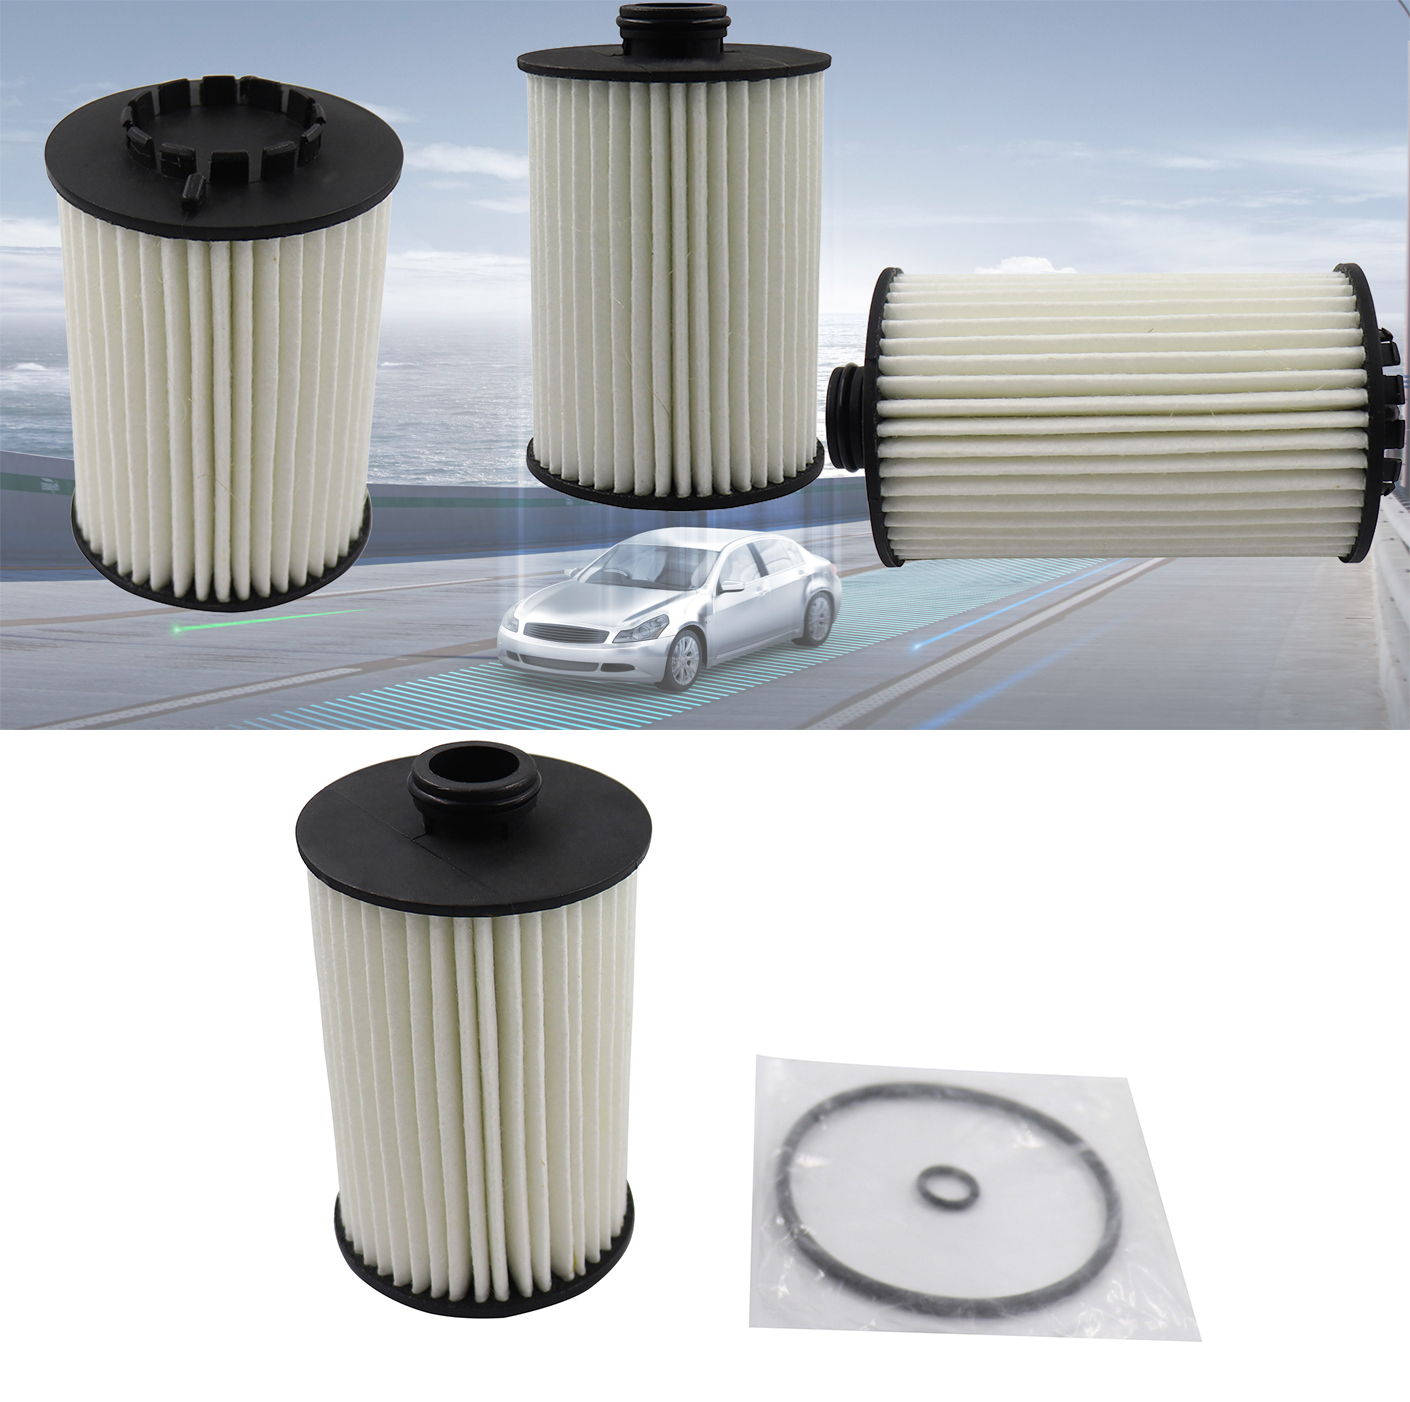 Fit for AUDI A4 A6 A8 Allroad B7 B6 8E 4E VW Phaeton Engine cleaner Oil Filter